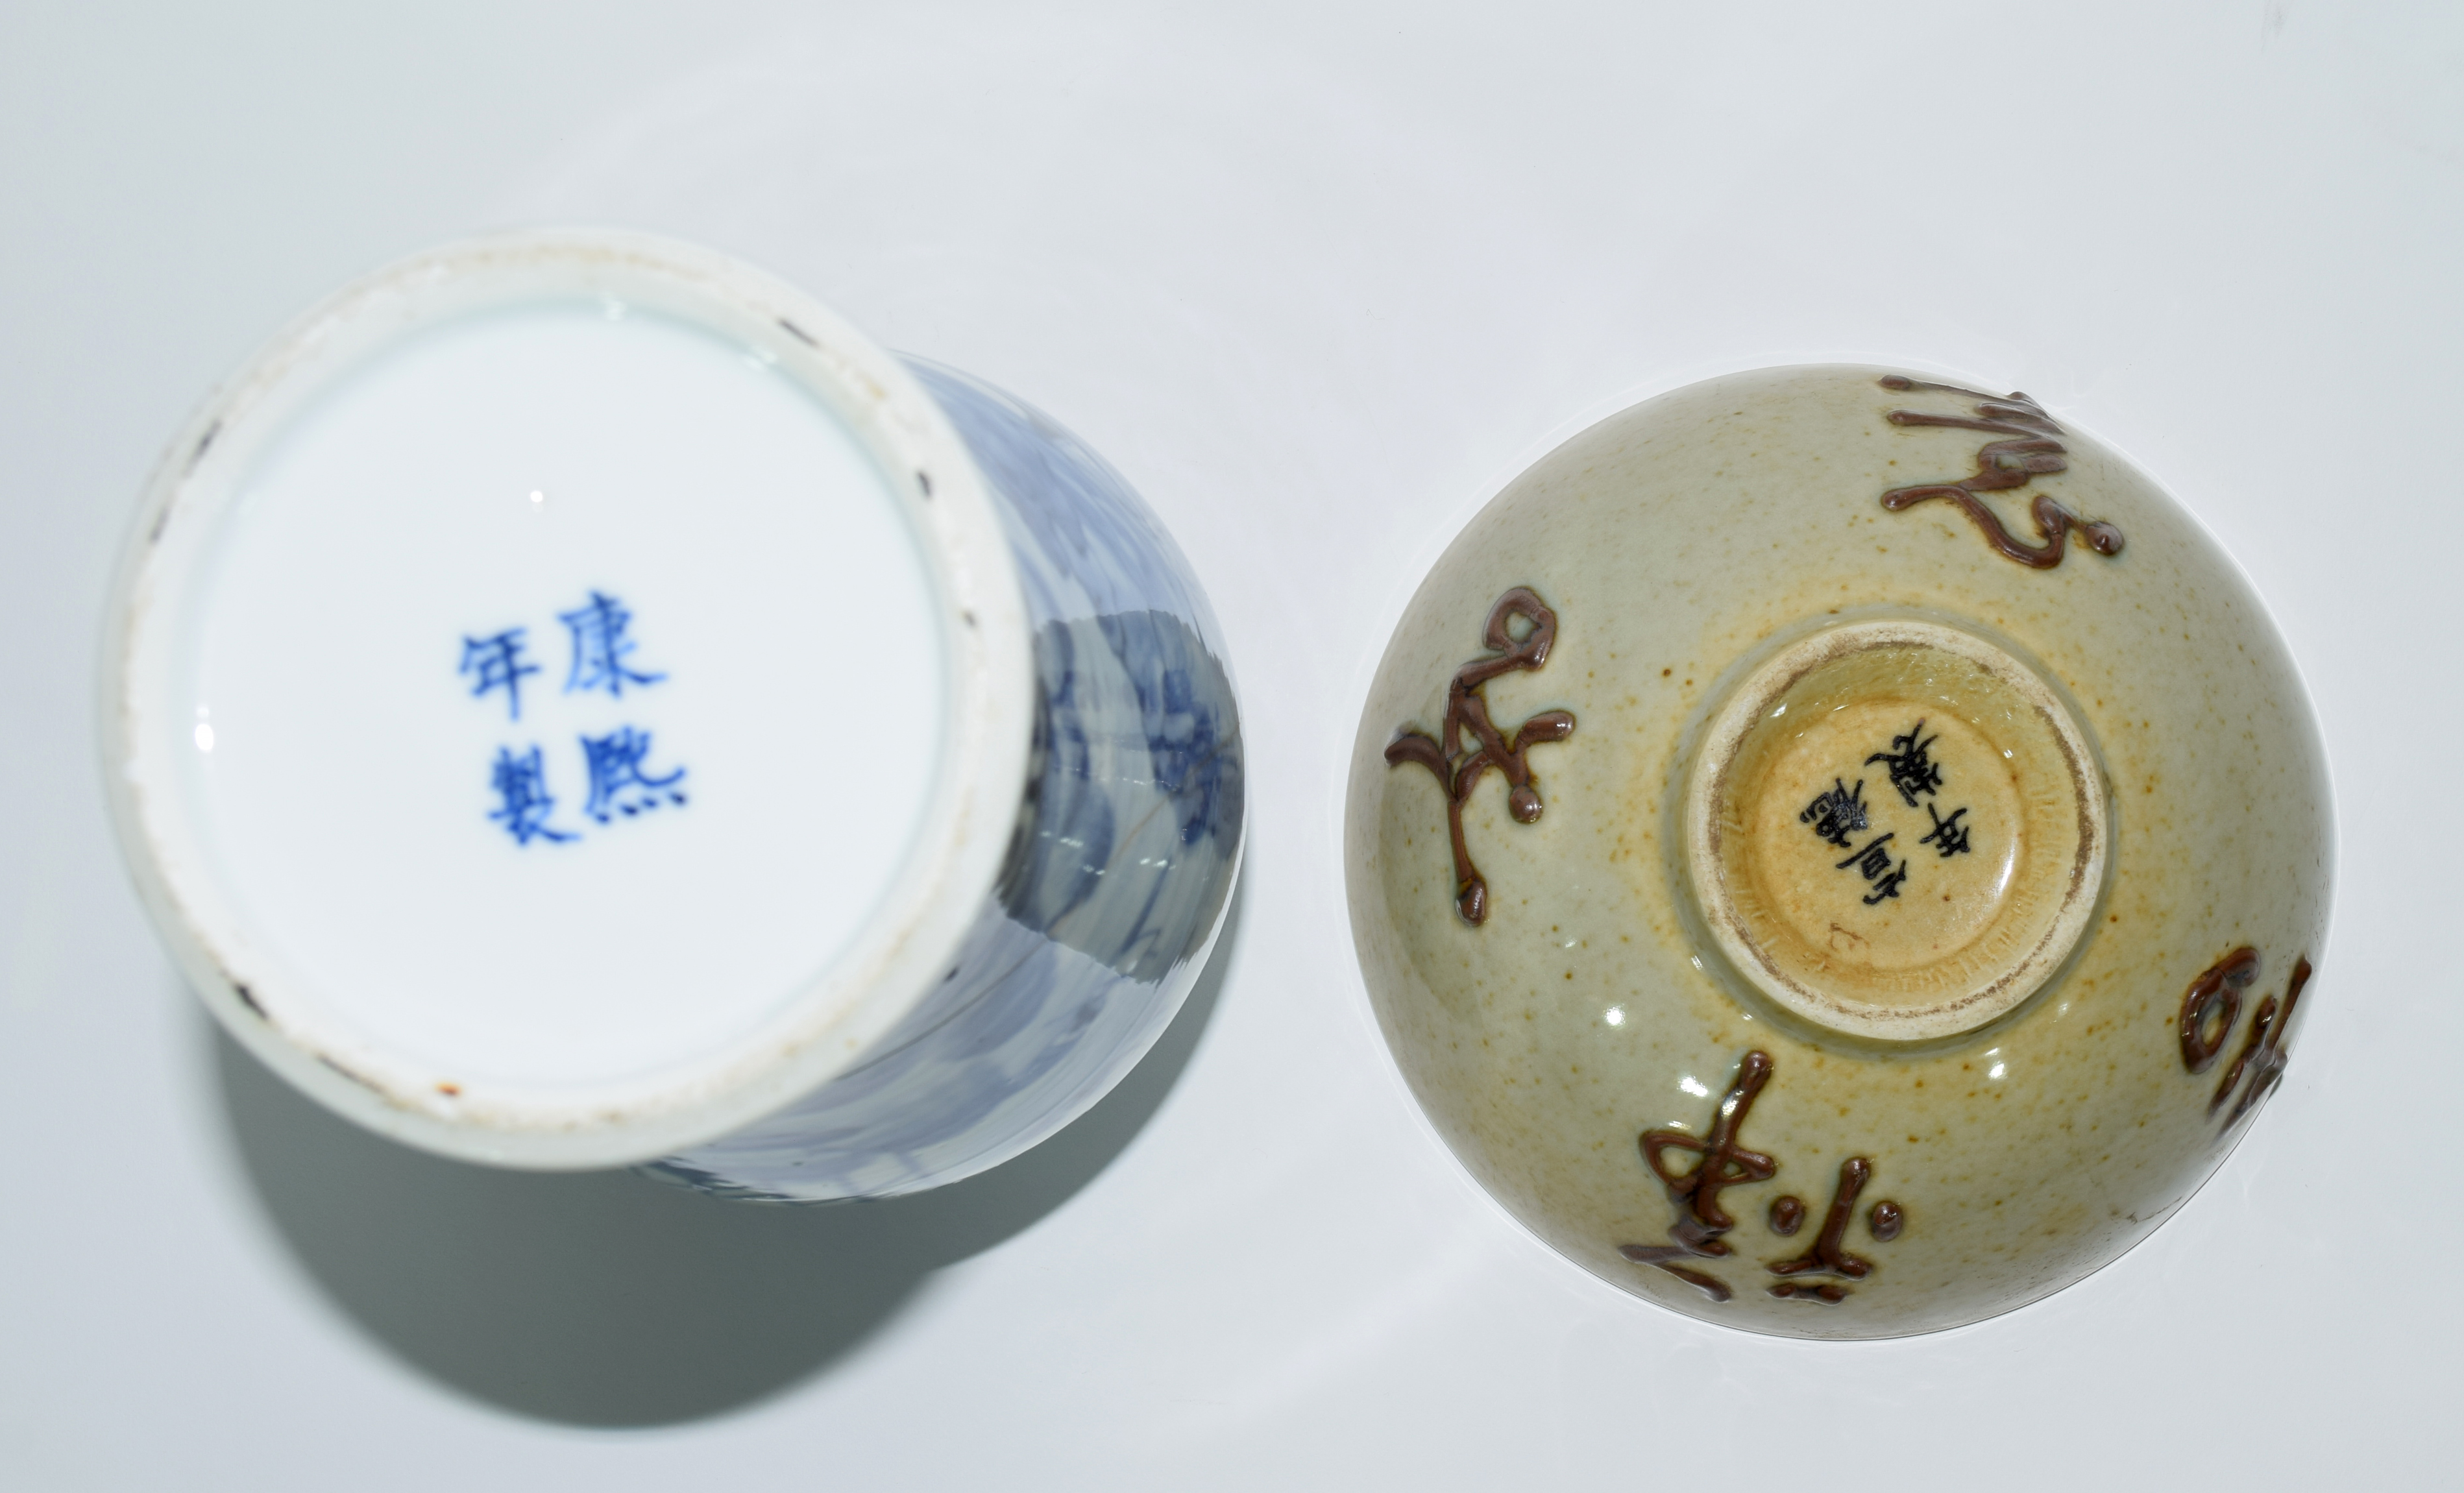 19th century Chinese porcelain bowl - Image 12 of 17